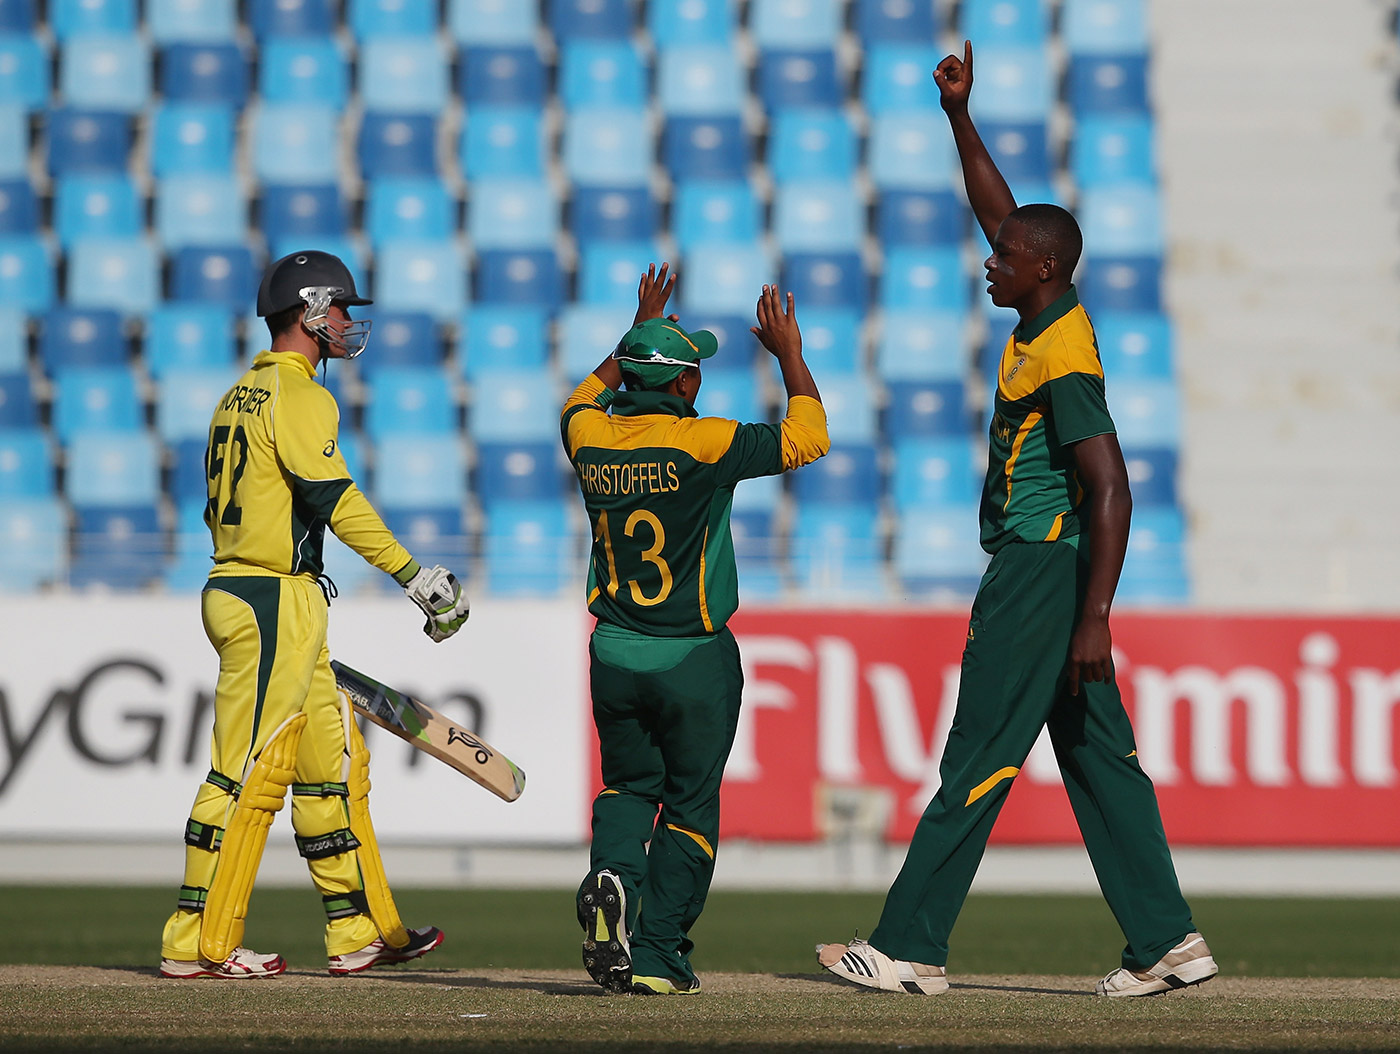 Rabada ripped through Australia U-19s with six wickets in the 2014 junior World Cup semi-final